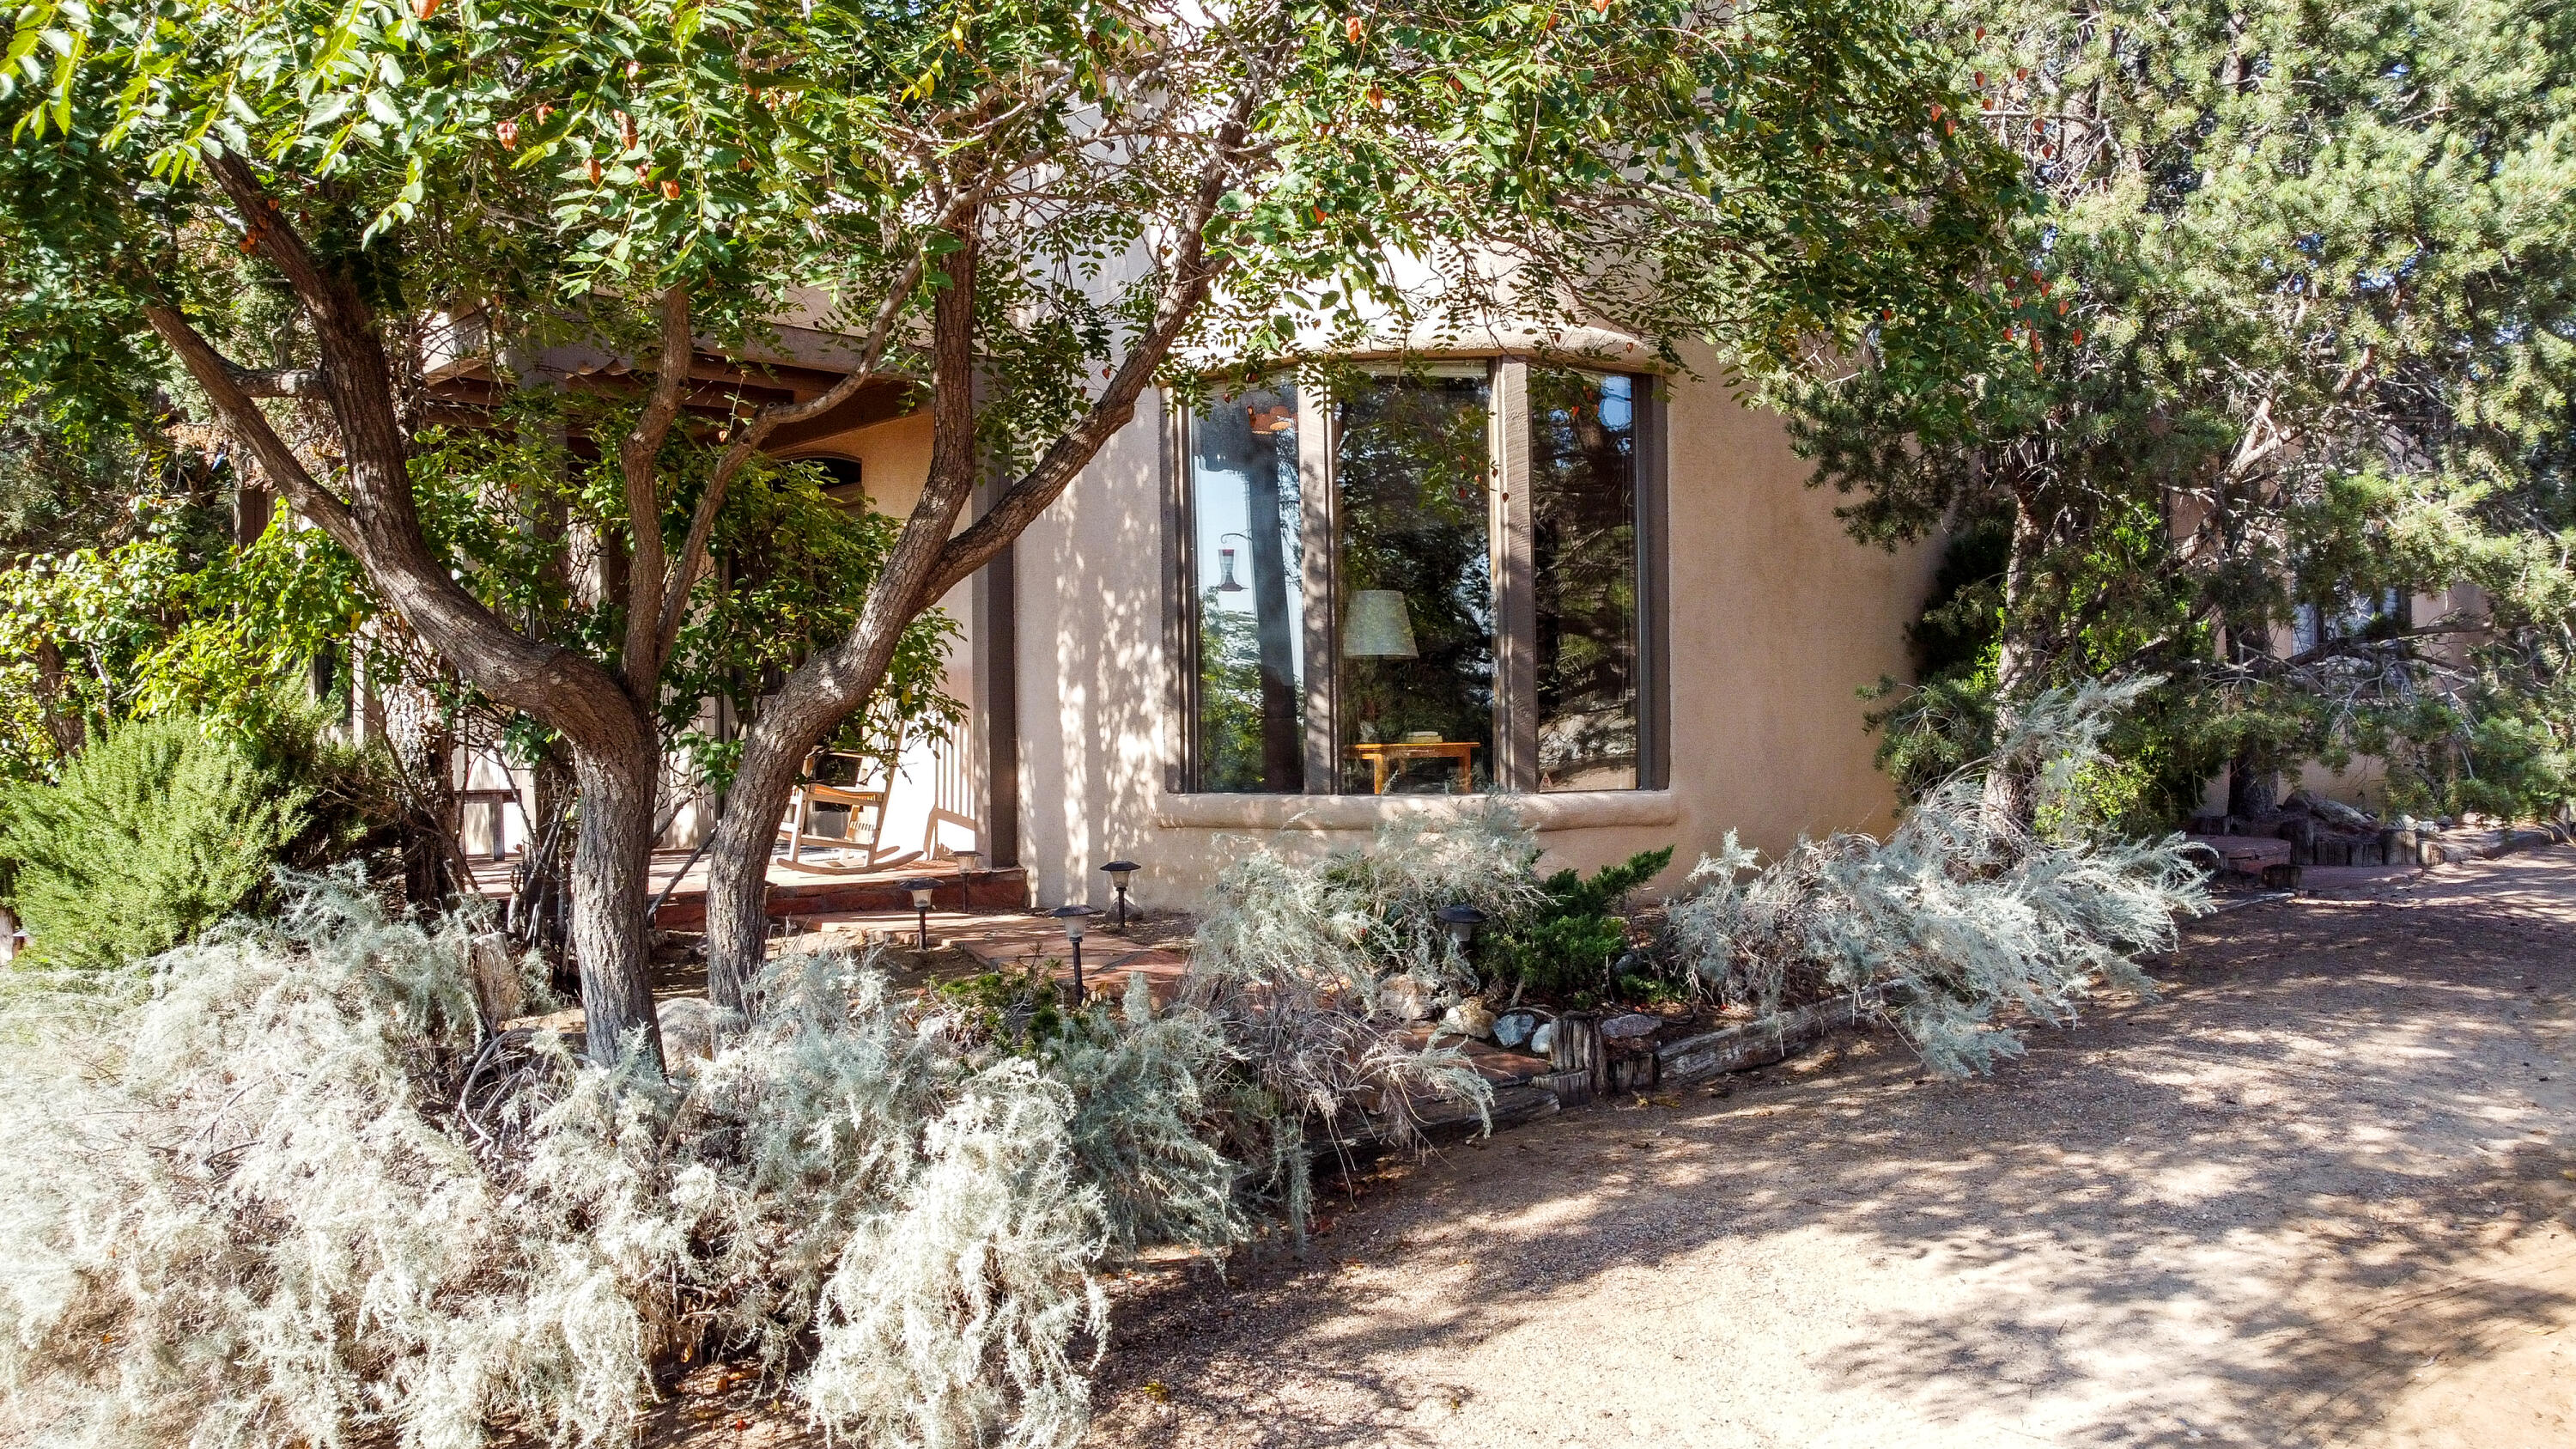 Nestled in trees, lush green shrubbery and flowers with three ponds and a stream this property is an oasis bordered by an orchard. Additionally, It has a 24'x 30' heated workshop/garage with a .75 bath and electricity, which could become a casita. Horses enjoy a 5 stall barn with tack room, a huge arena with two stalls and a 250 bale hay barn.  The lovely home has large windows throughout looking at the green gardens and the Sandia's.  Perfectly suited for entertaining it has two living areas, a kitchen with  two pantries and an island. The guest suite has its own radiant heat and 3/4 bath. This place even has its own chicken coop.  Located in a great neighborhood on the convenient south end of Corrales near shopping, restaurants, medical facilities and services.